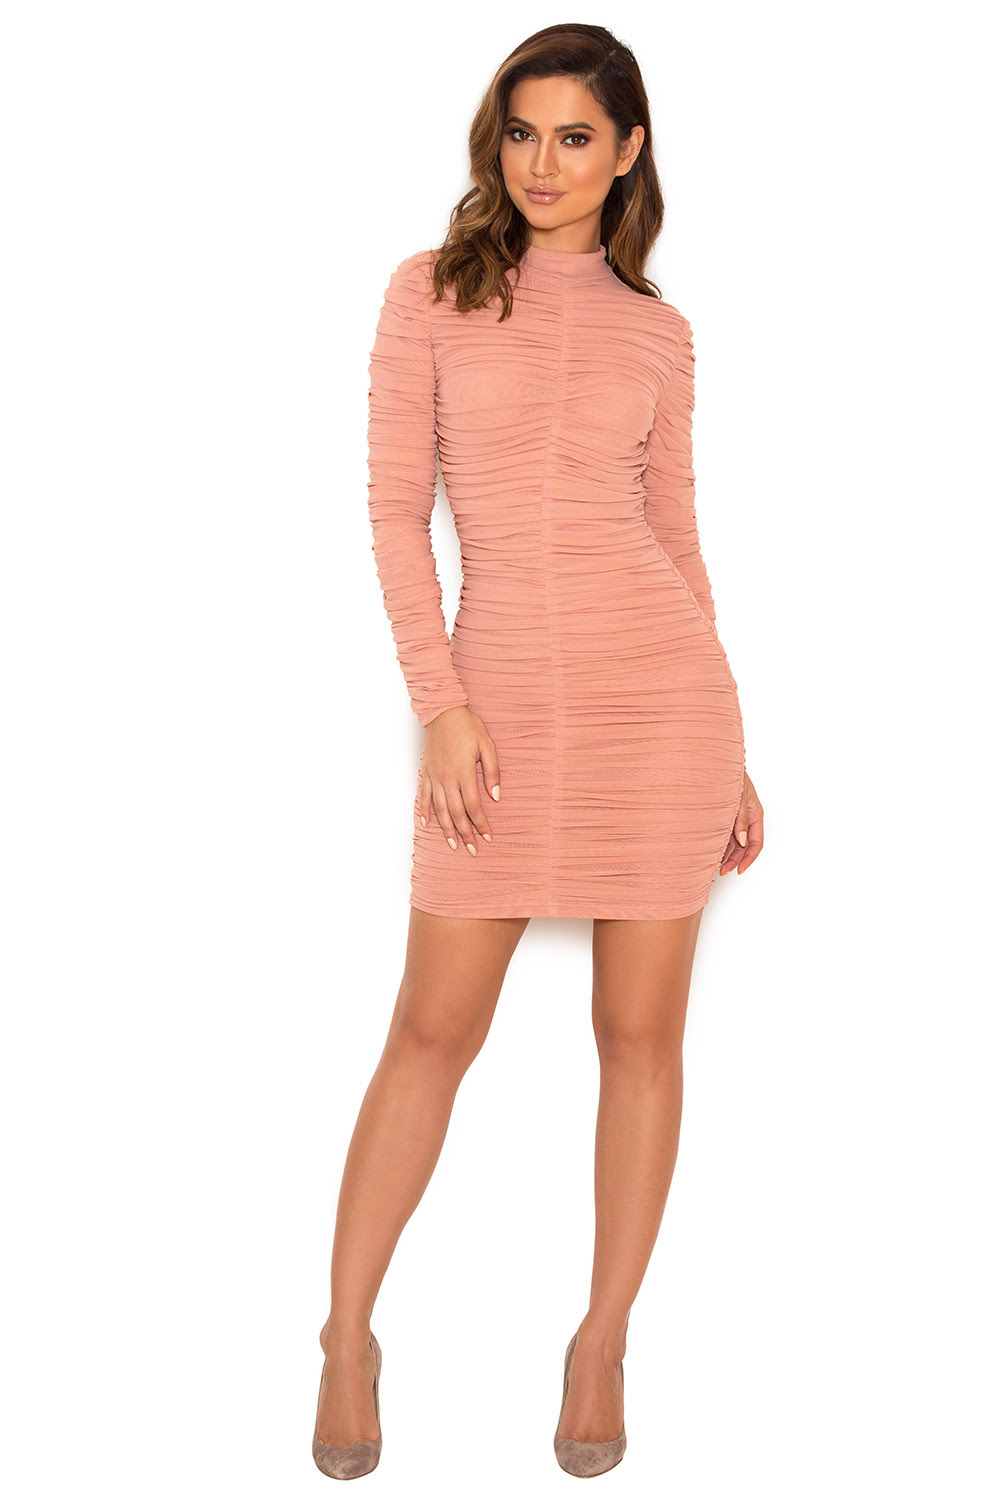 Natural fabrics feather skirt bodycon dress pink dusty clubs